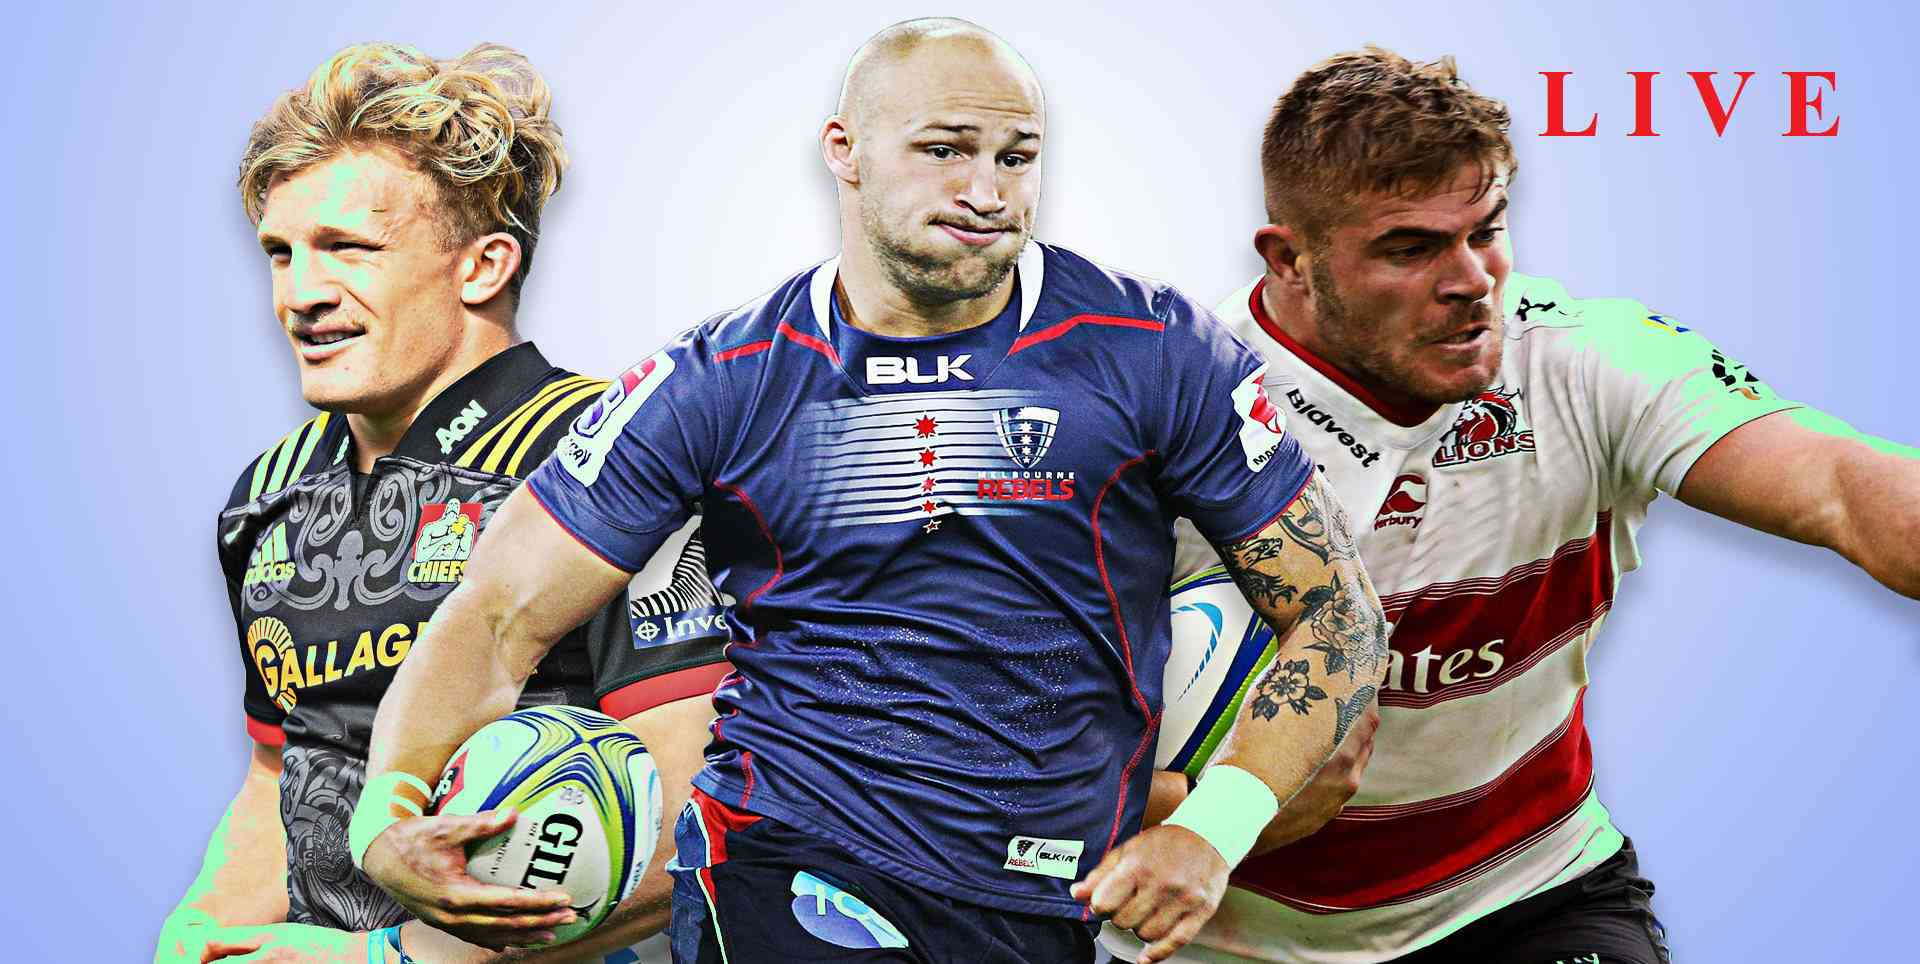 Queensland Reds vs Melbourne Rebels Rugby Live